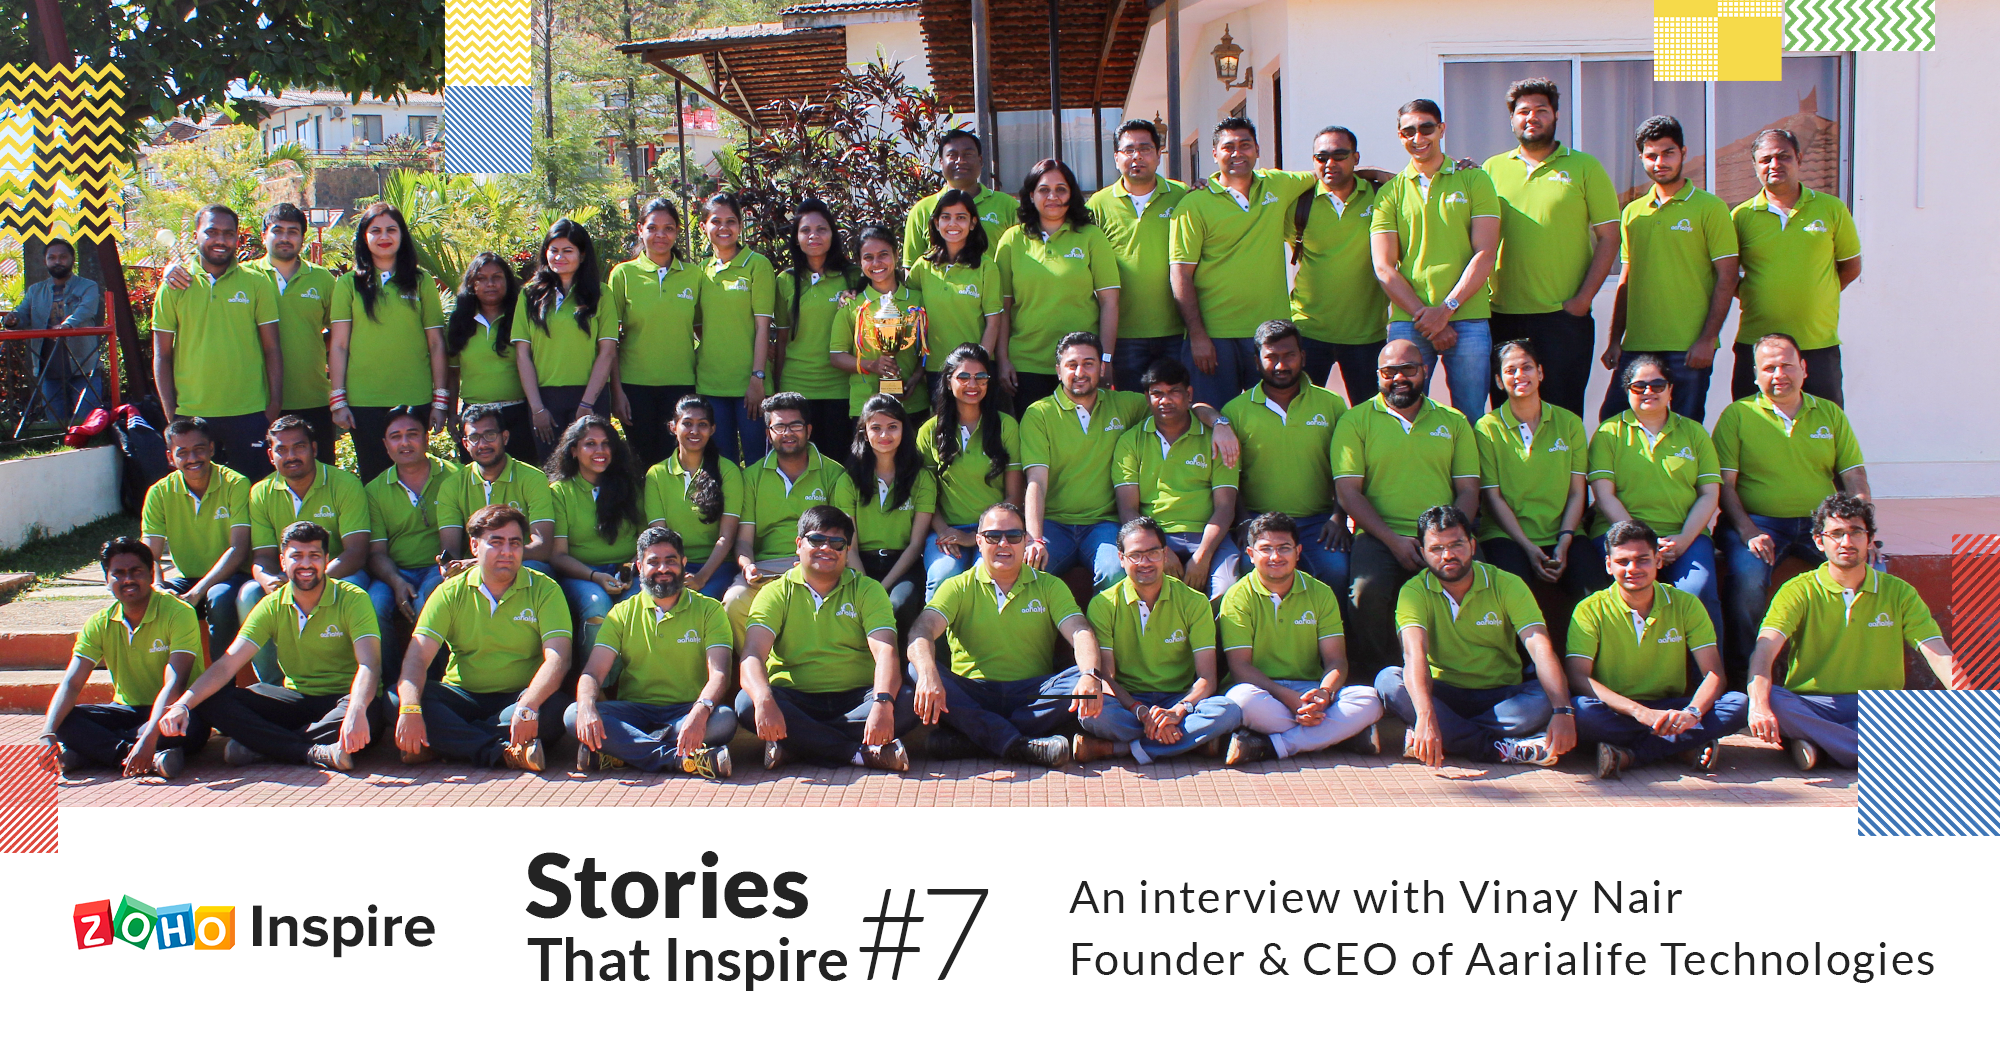 How Aarialife partnered with Zoho and achieved incredible growth in one year!